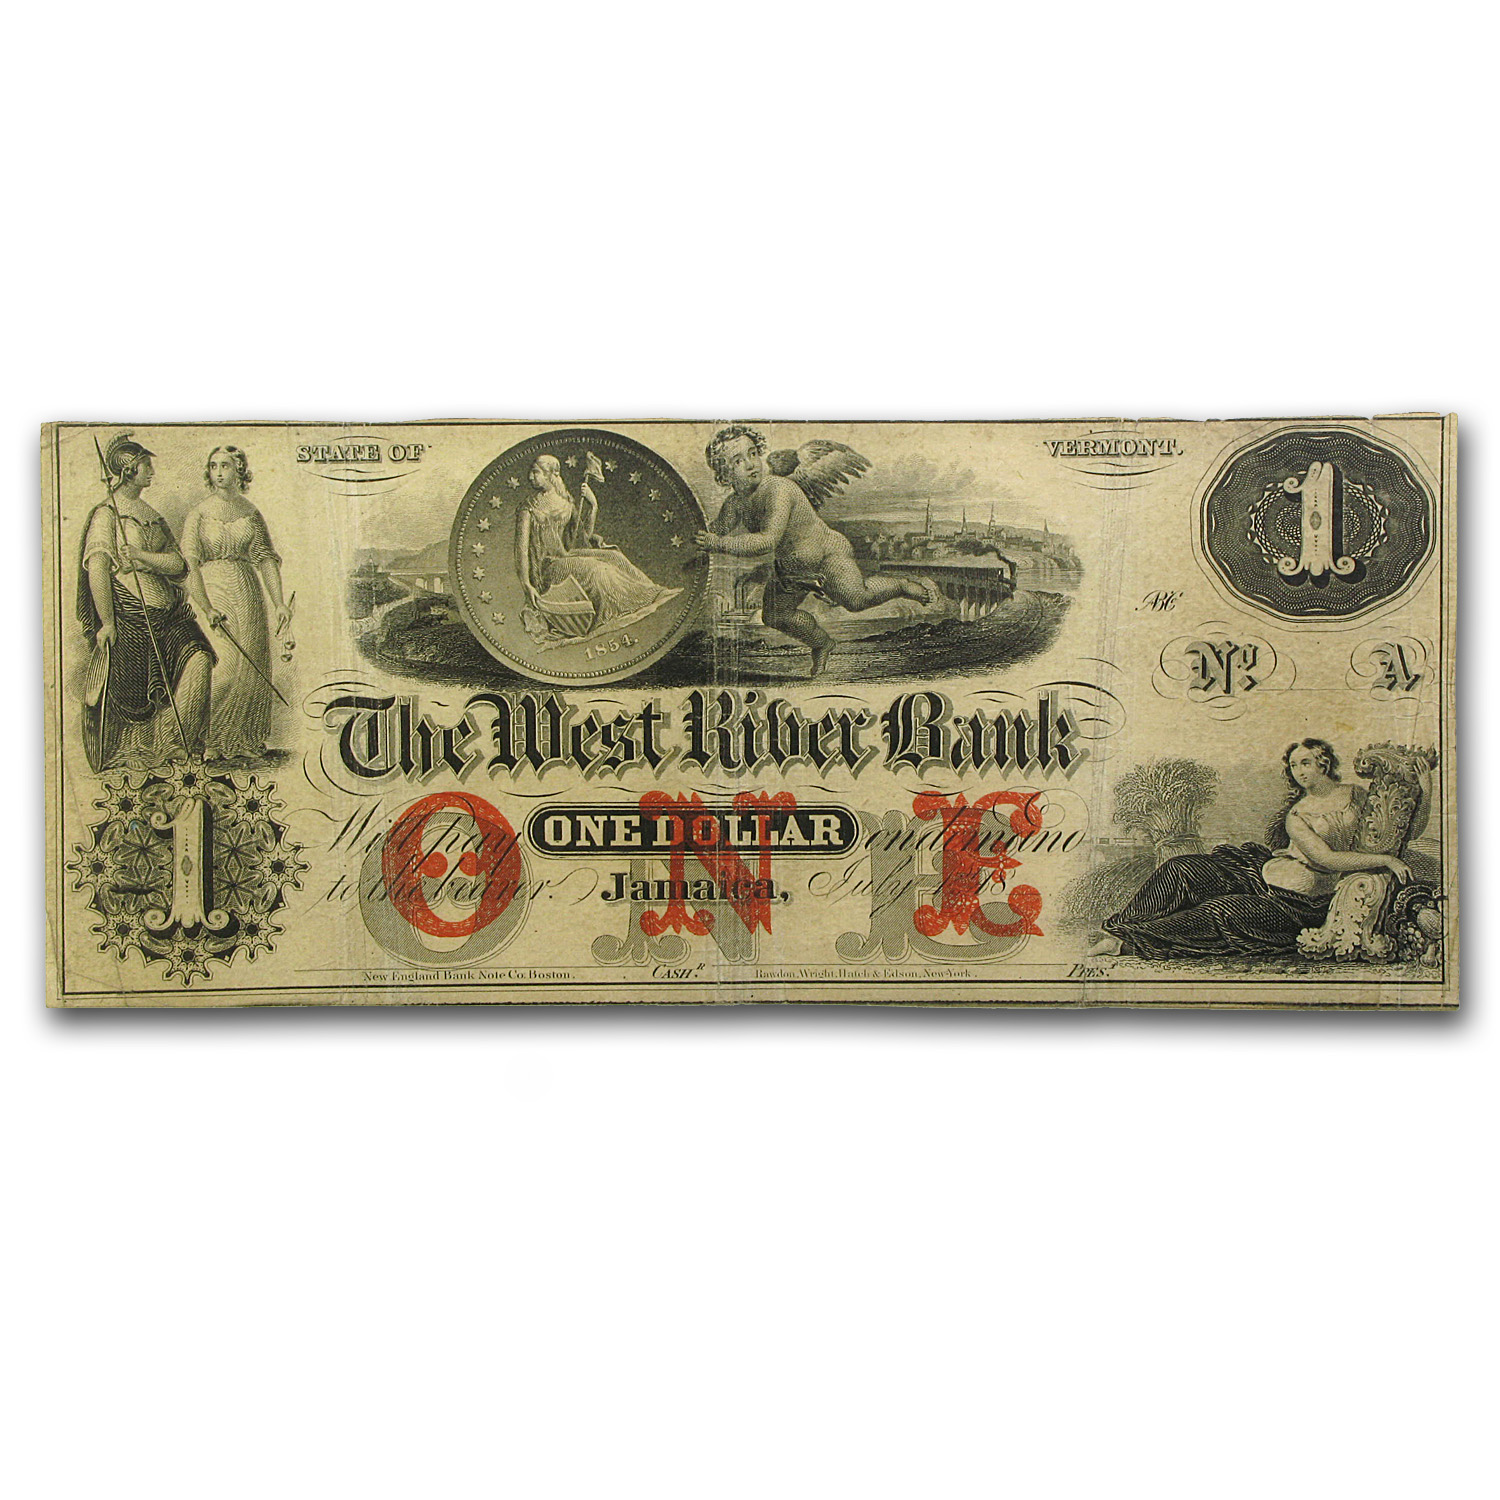 18__ The West River Bank, Jamaica, VT $1.00 Note VT-115 VF+